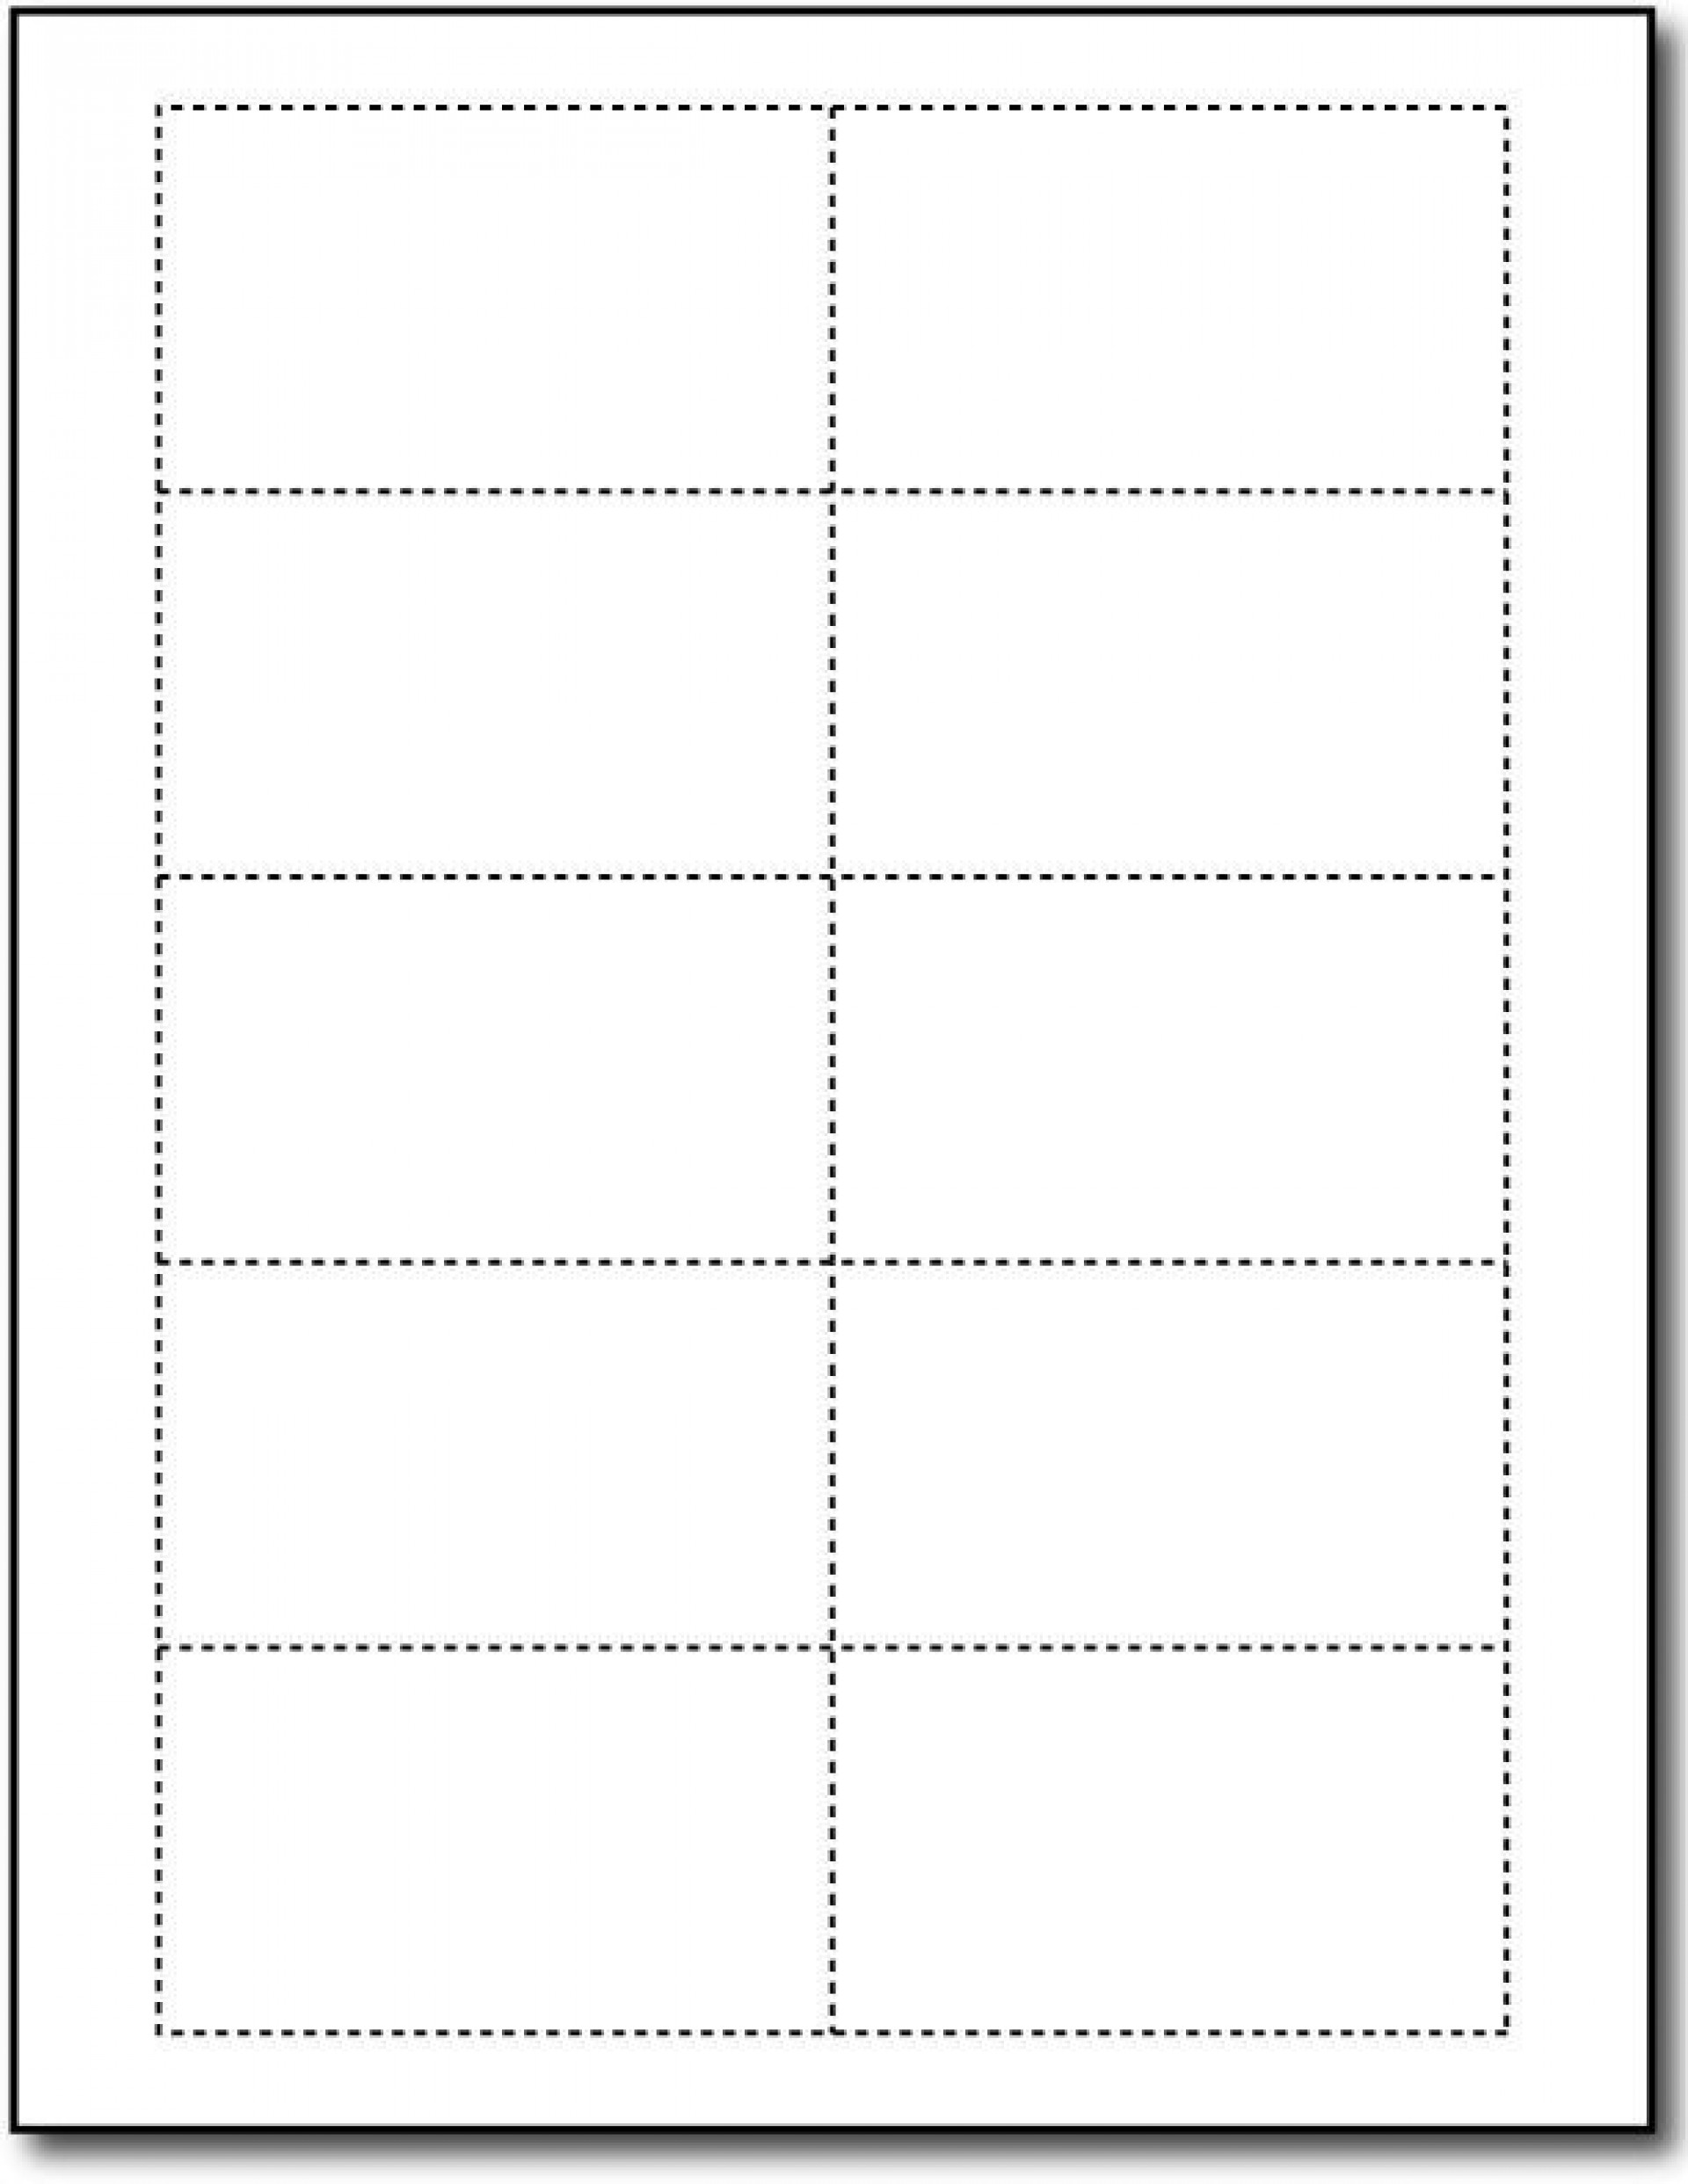 Word Busines Card Template Free Simple Download  Microsoft 2007 Double Sided Blank1920